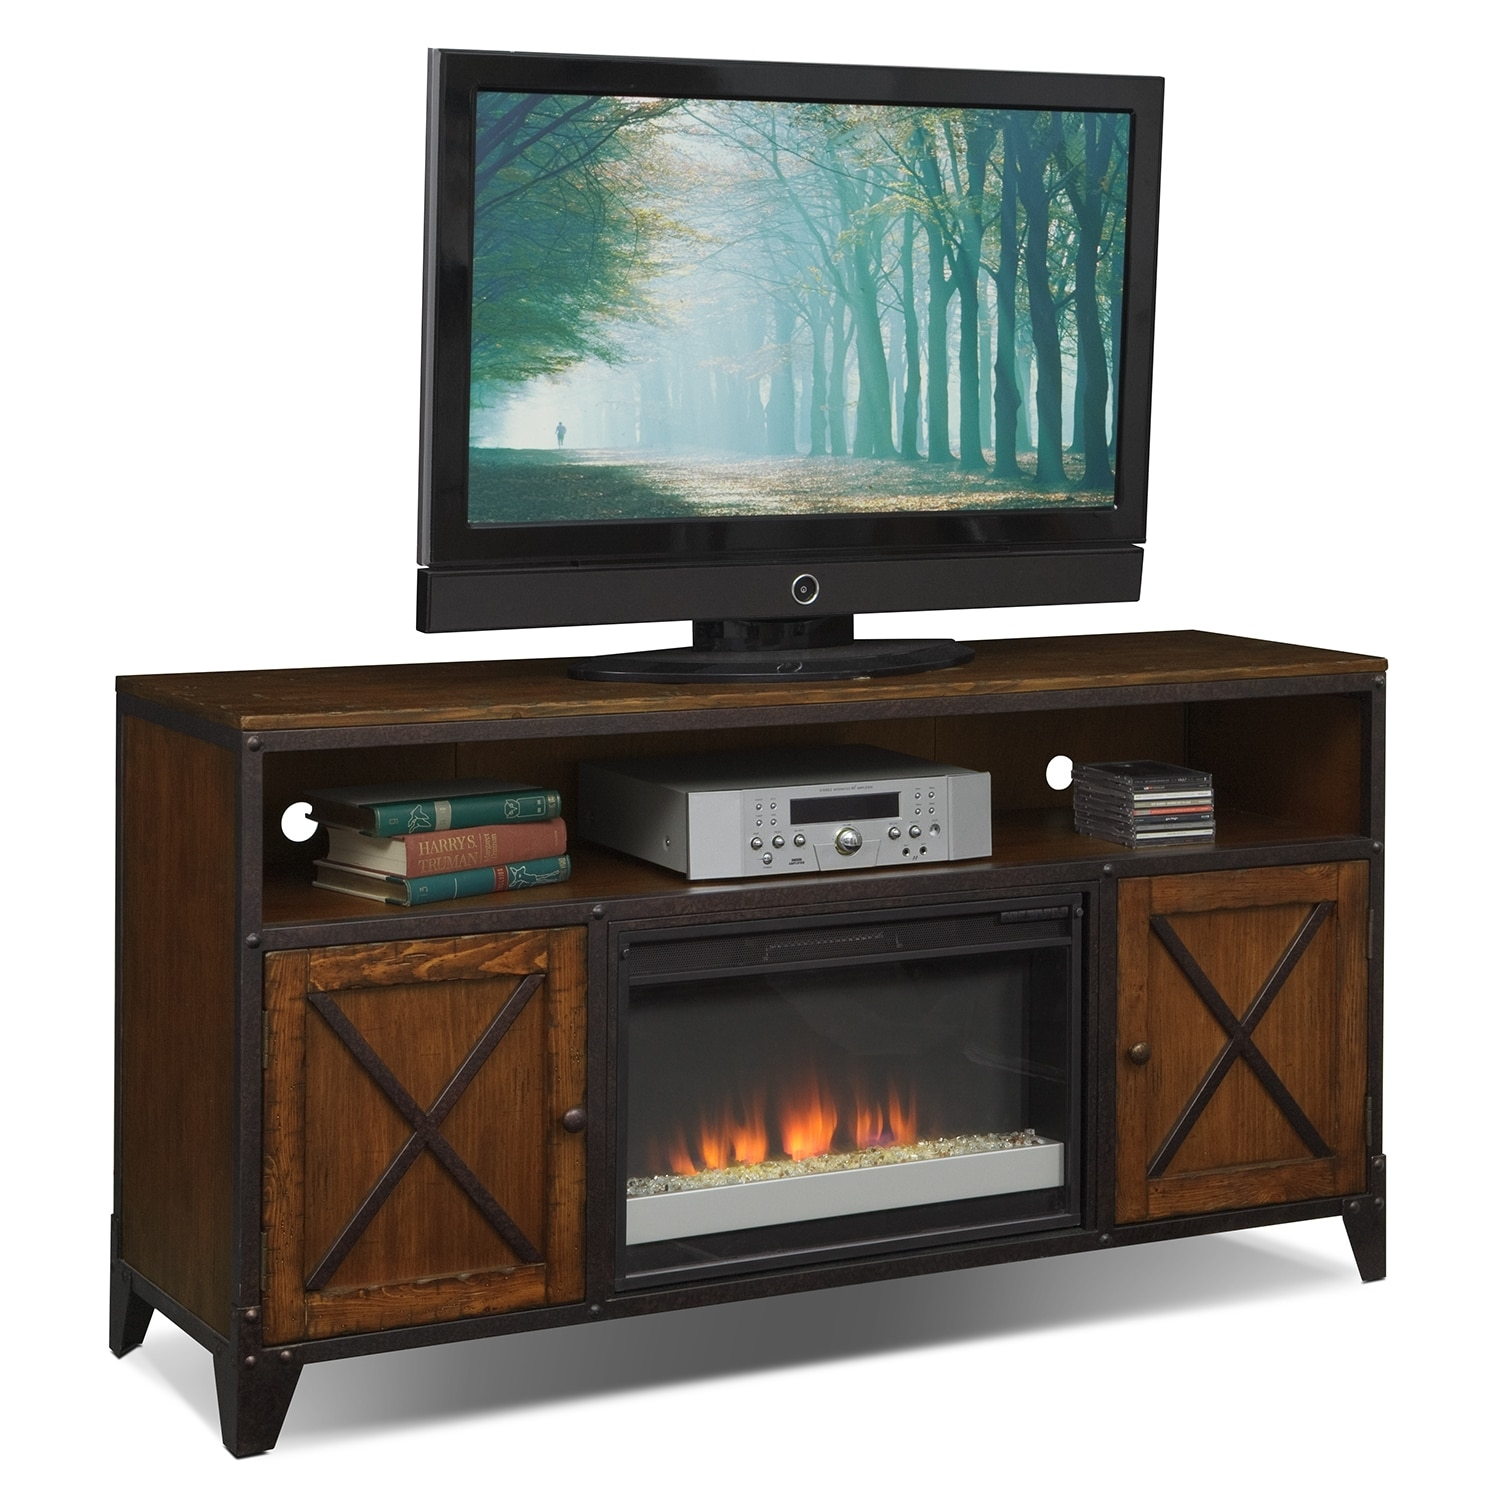 Shortline Fireplace TV Stand with Contemporary Insert - Distressed Pine